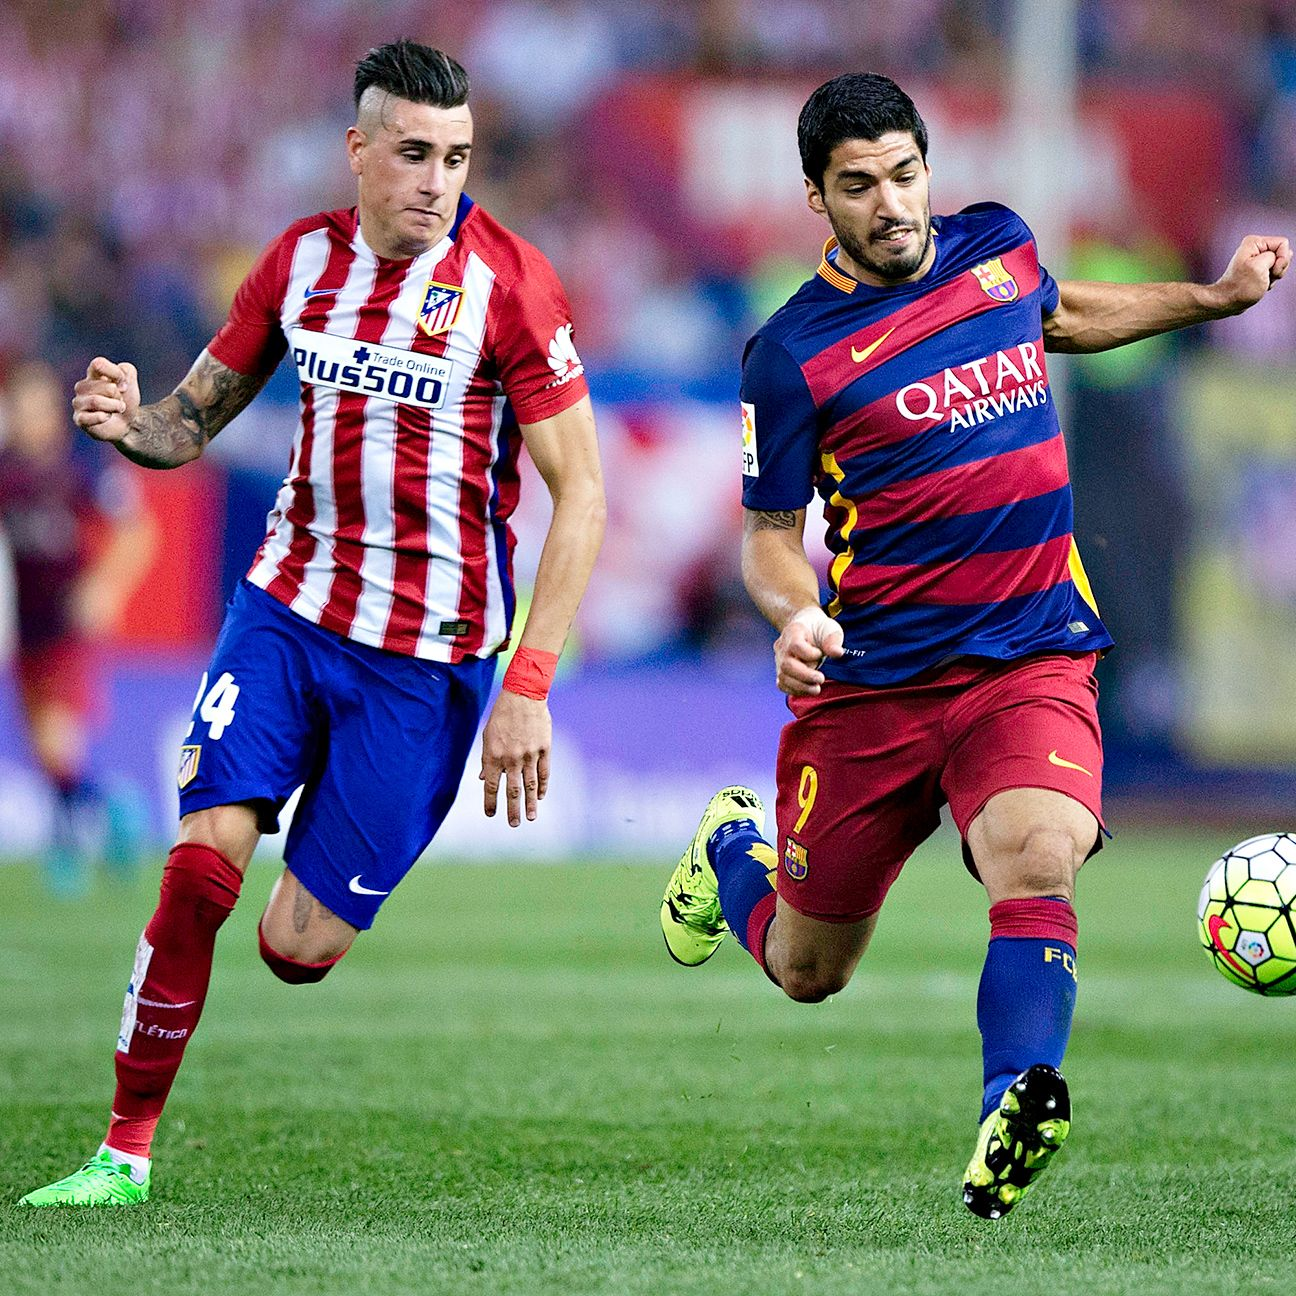 Atletico centre-back Jose Maria Gimenez did well to keep countryman Luis Suarez under wraps.